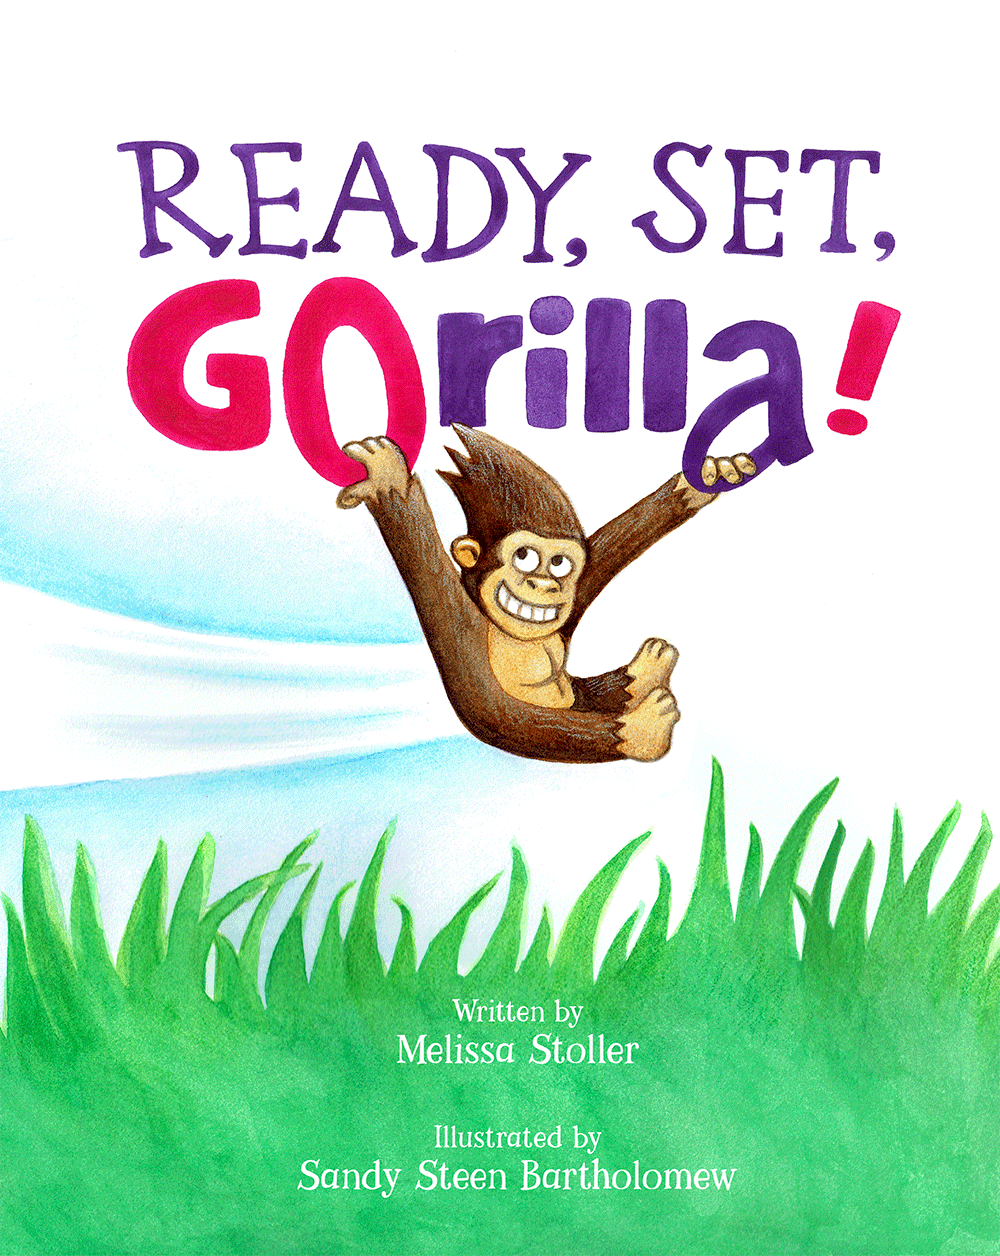 Ready-Set-GOrilla-Cover-72dpi-original